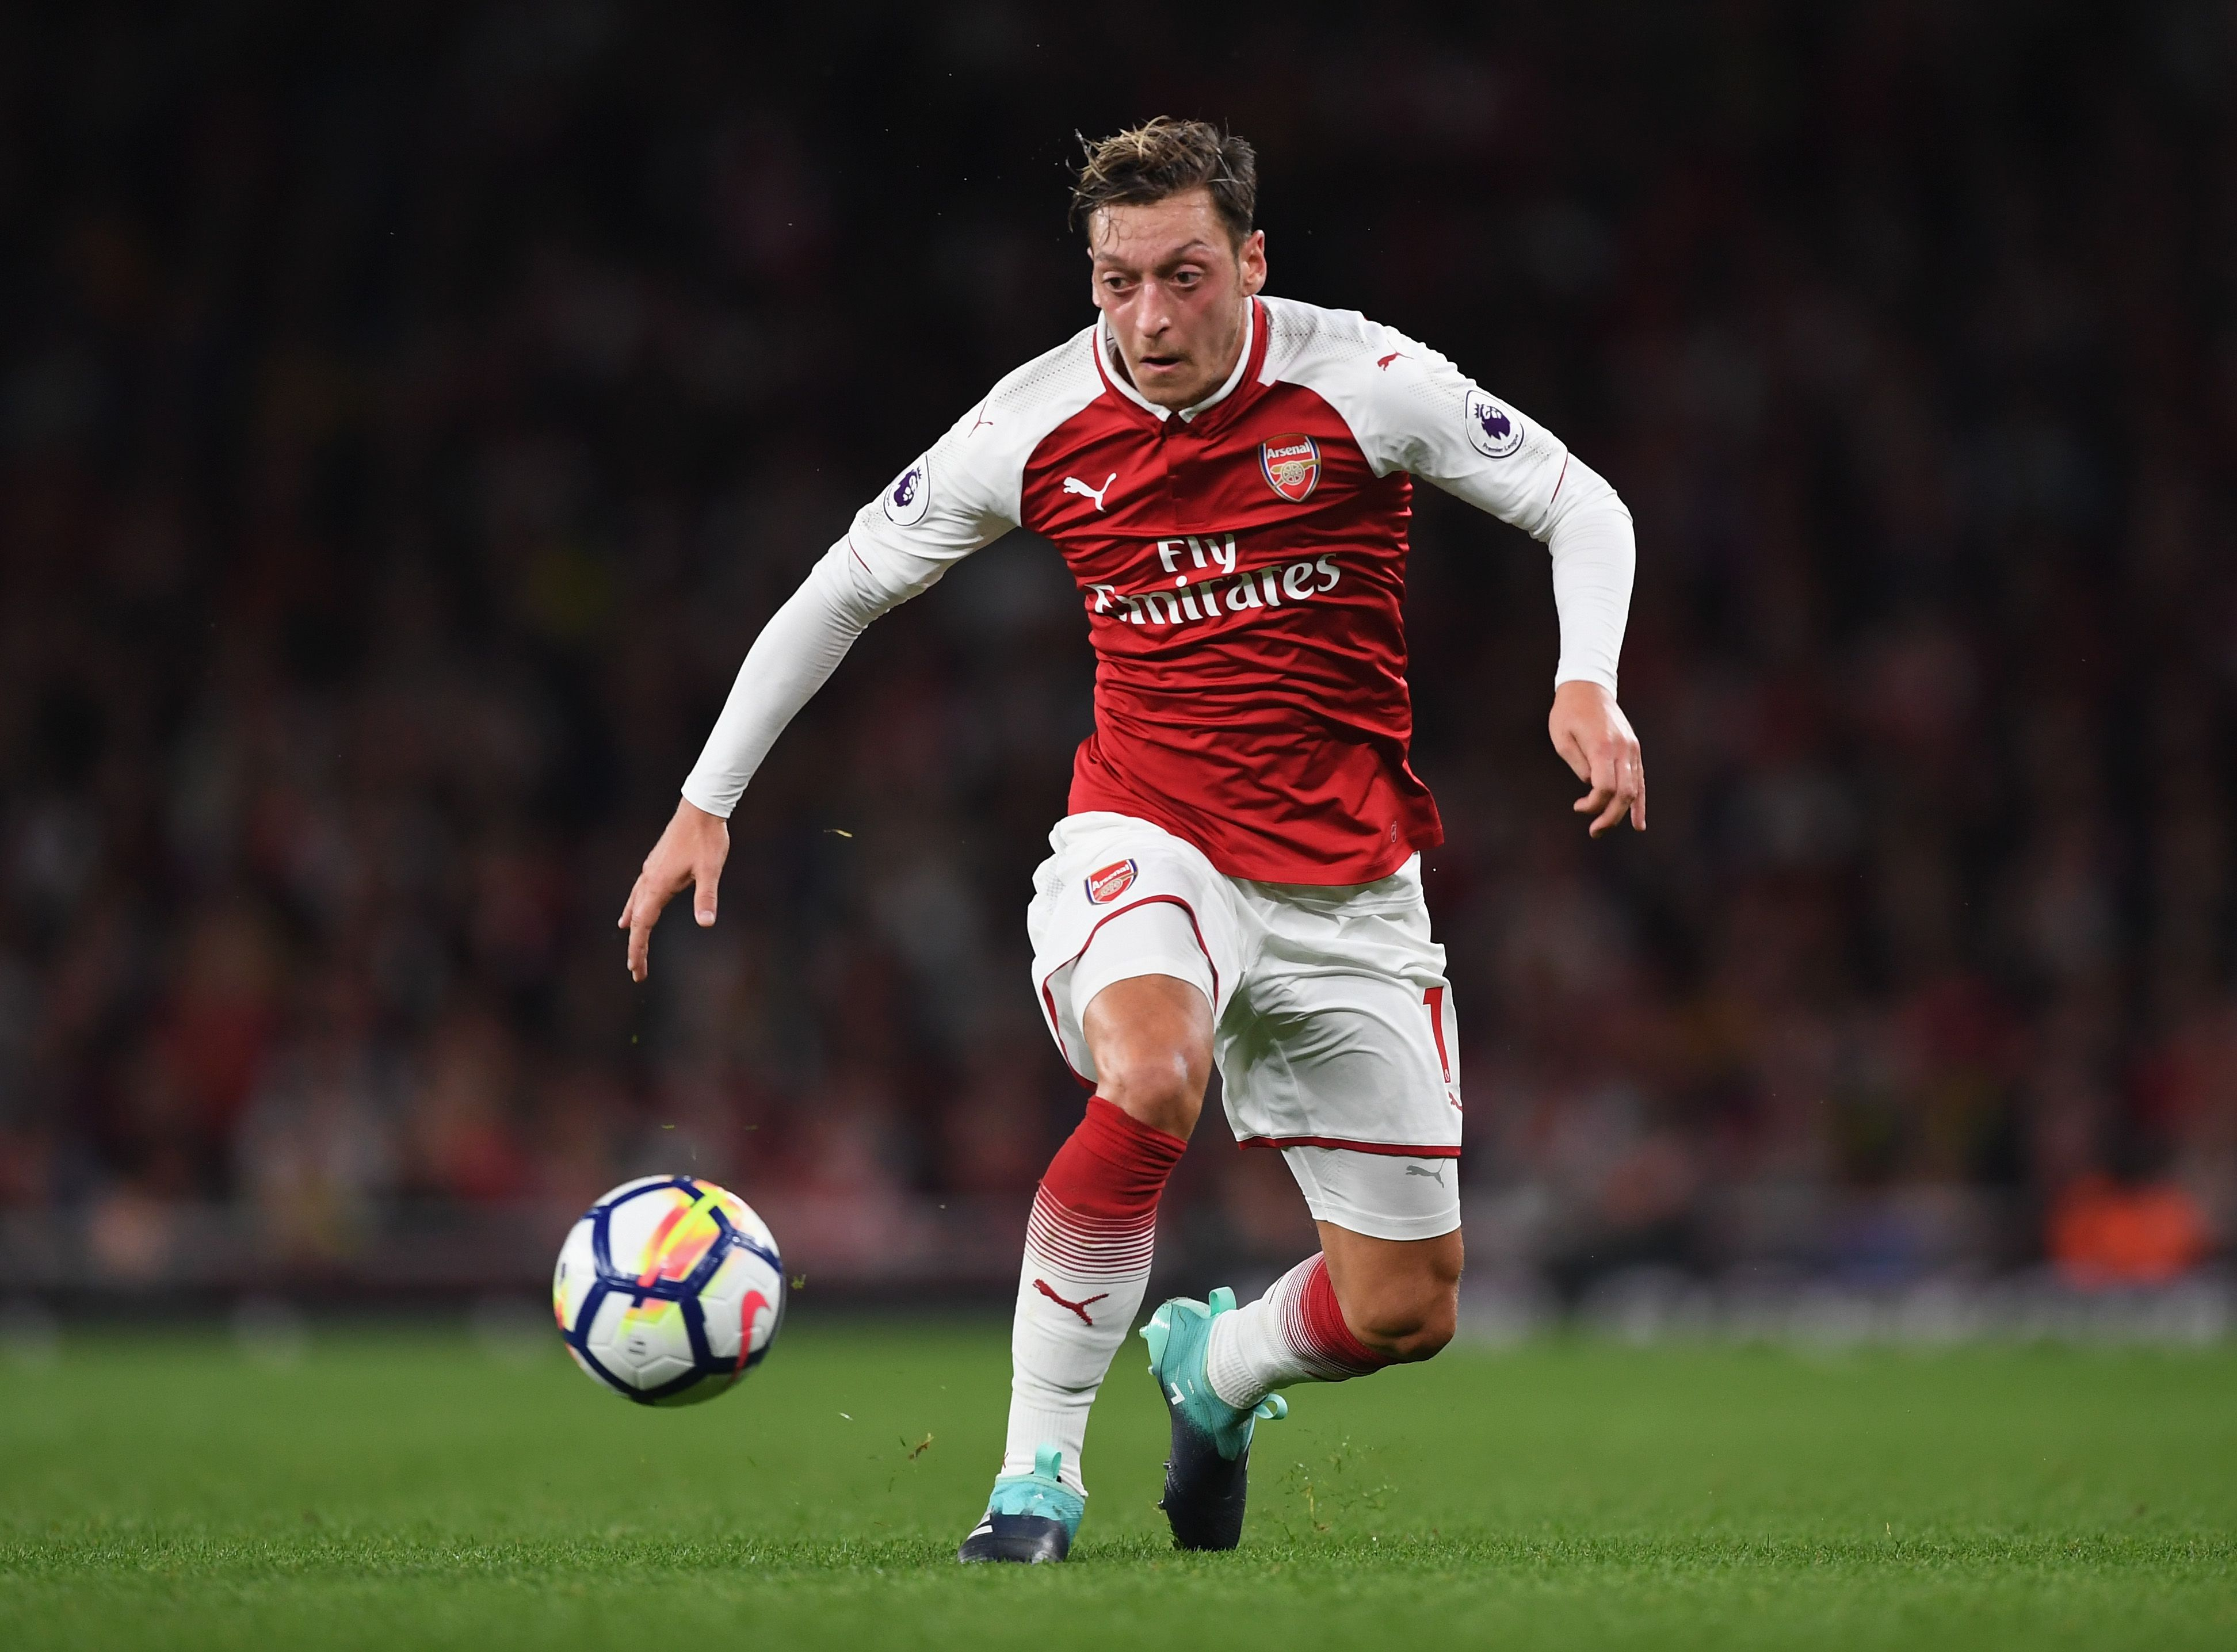 'Mesut Ozil to Manchester United for free looks done' (BBC